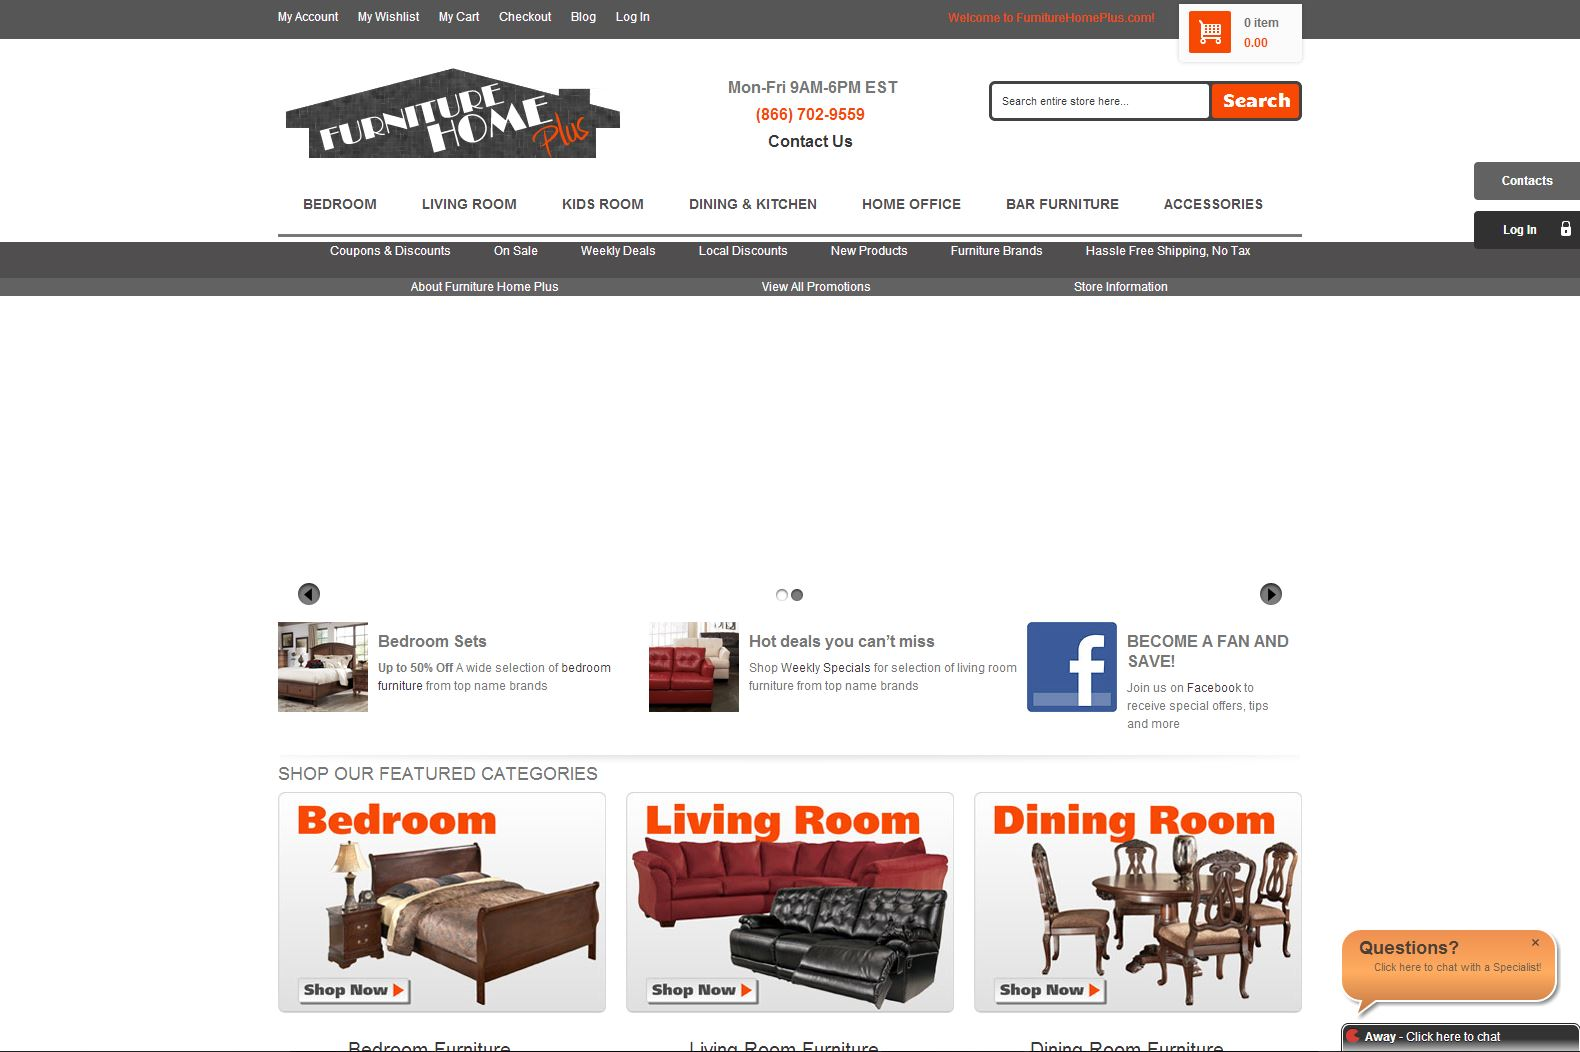 Furniture Home